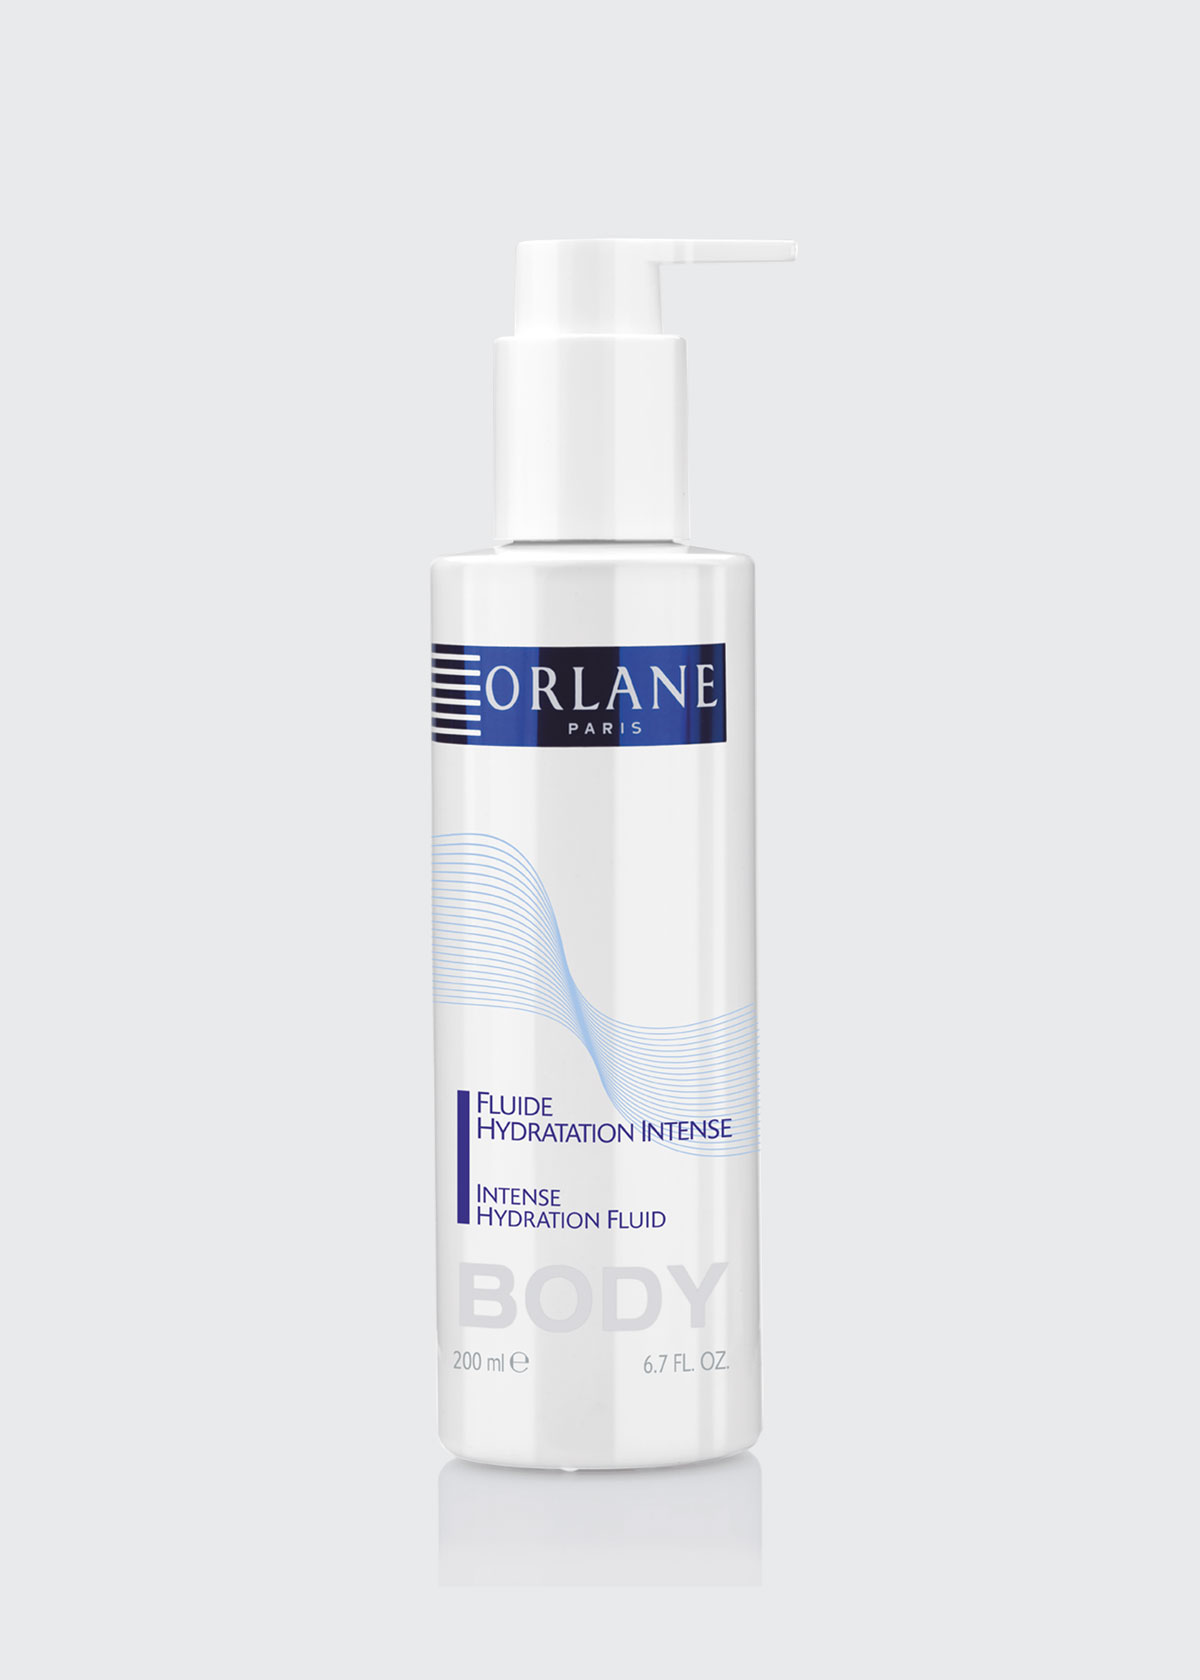 Orlane INTENSE HYDRATION FLUIDE, 6.7 OZ./ 200 ML